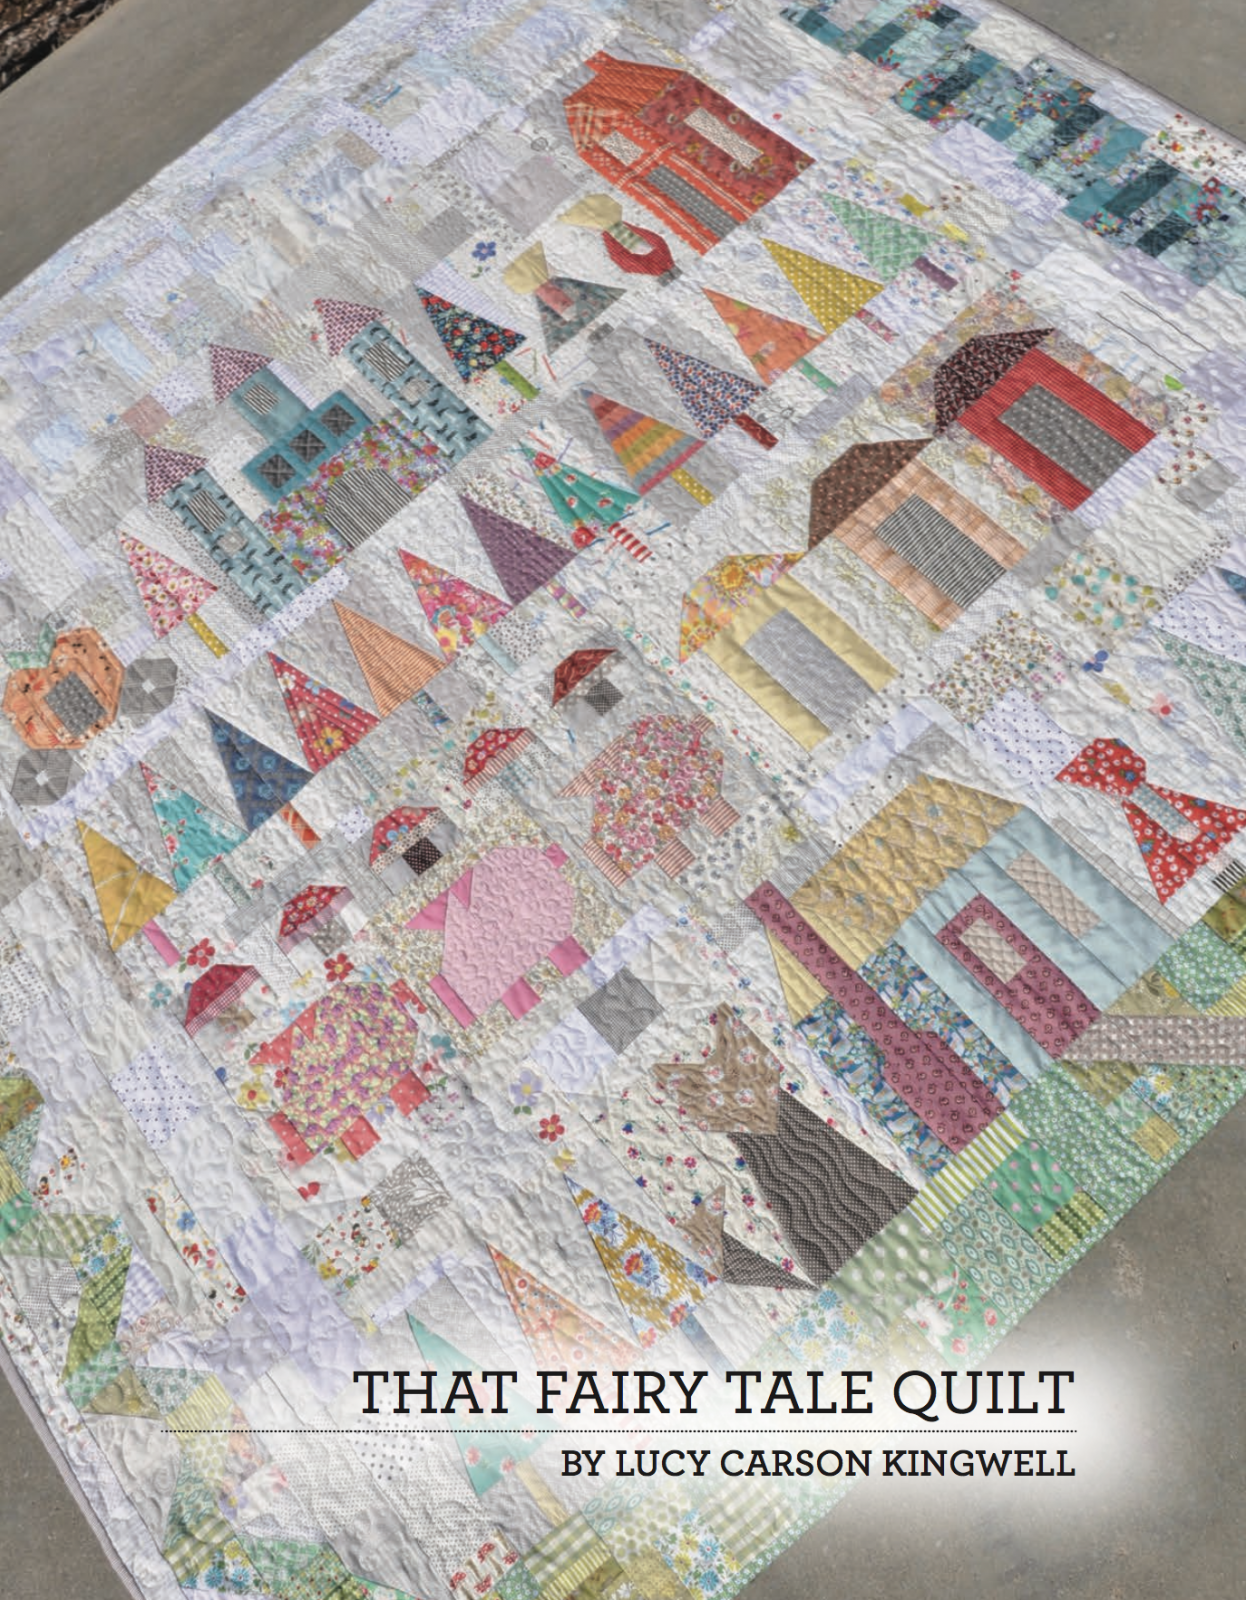 That Fairy Tale Quilt Booklet by Lucy Carson Kingwell